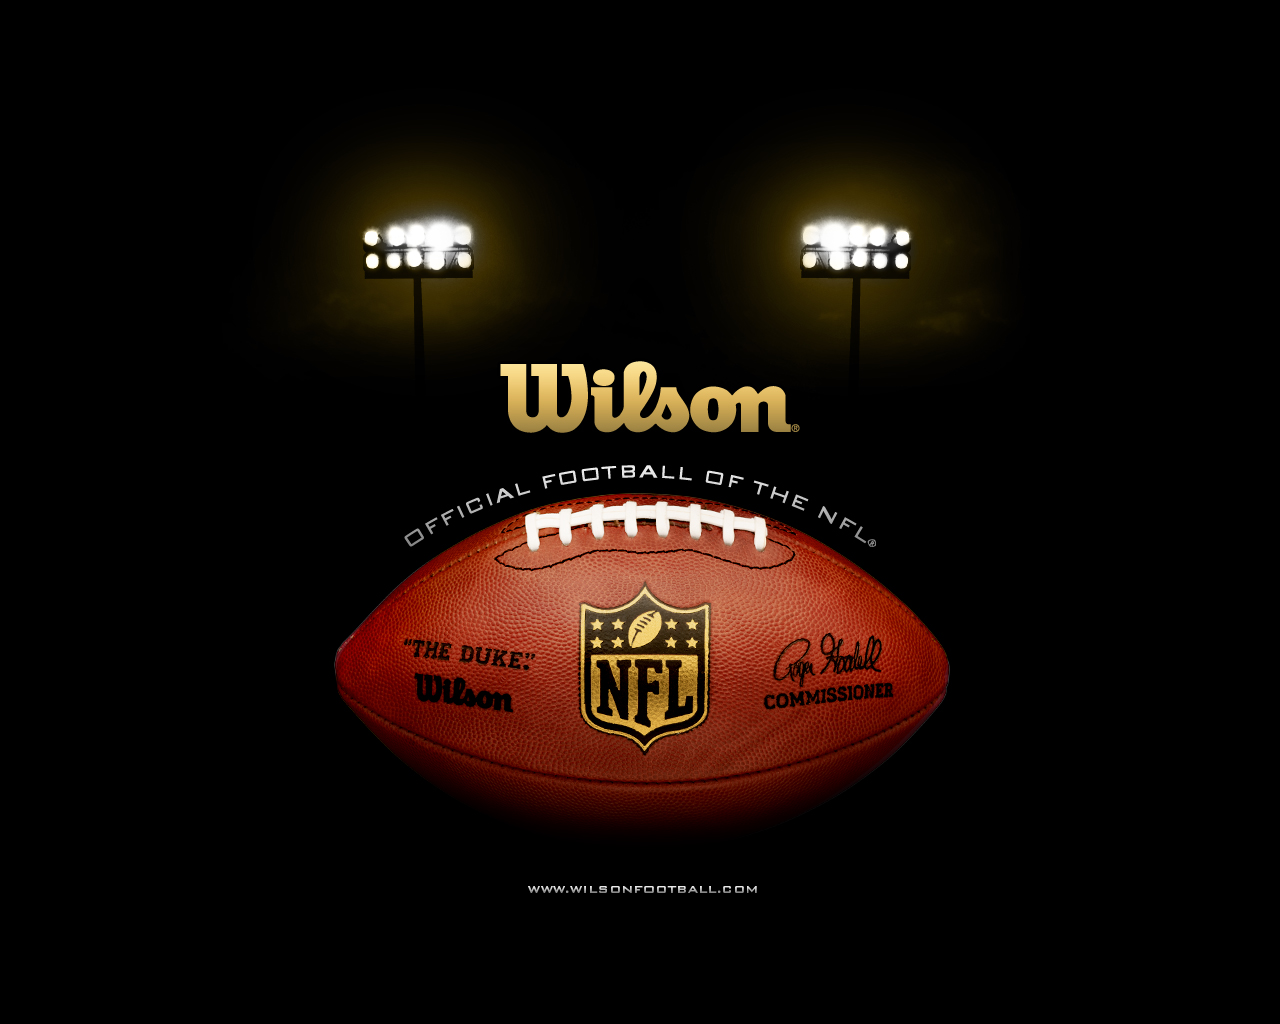 wallpaper nfl football wallpapers 1280x1024